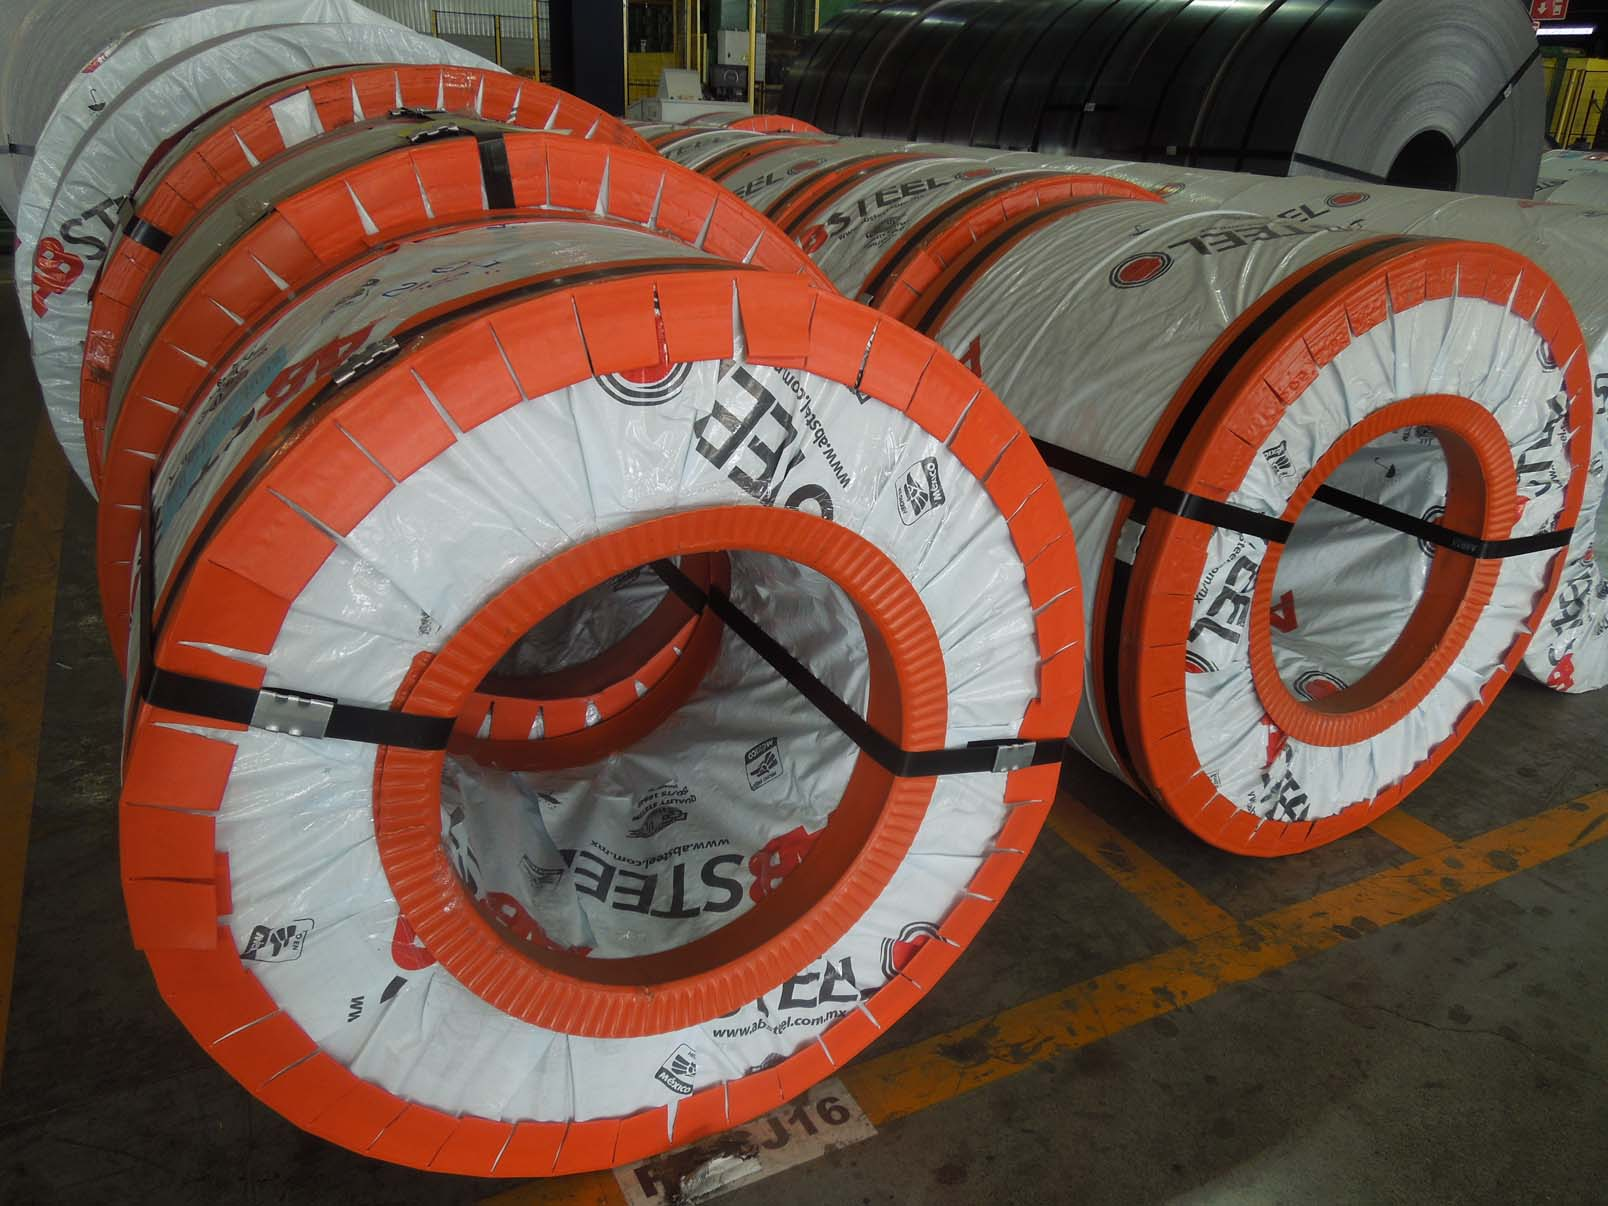 Steel Coils ready to transport